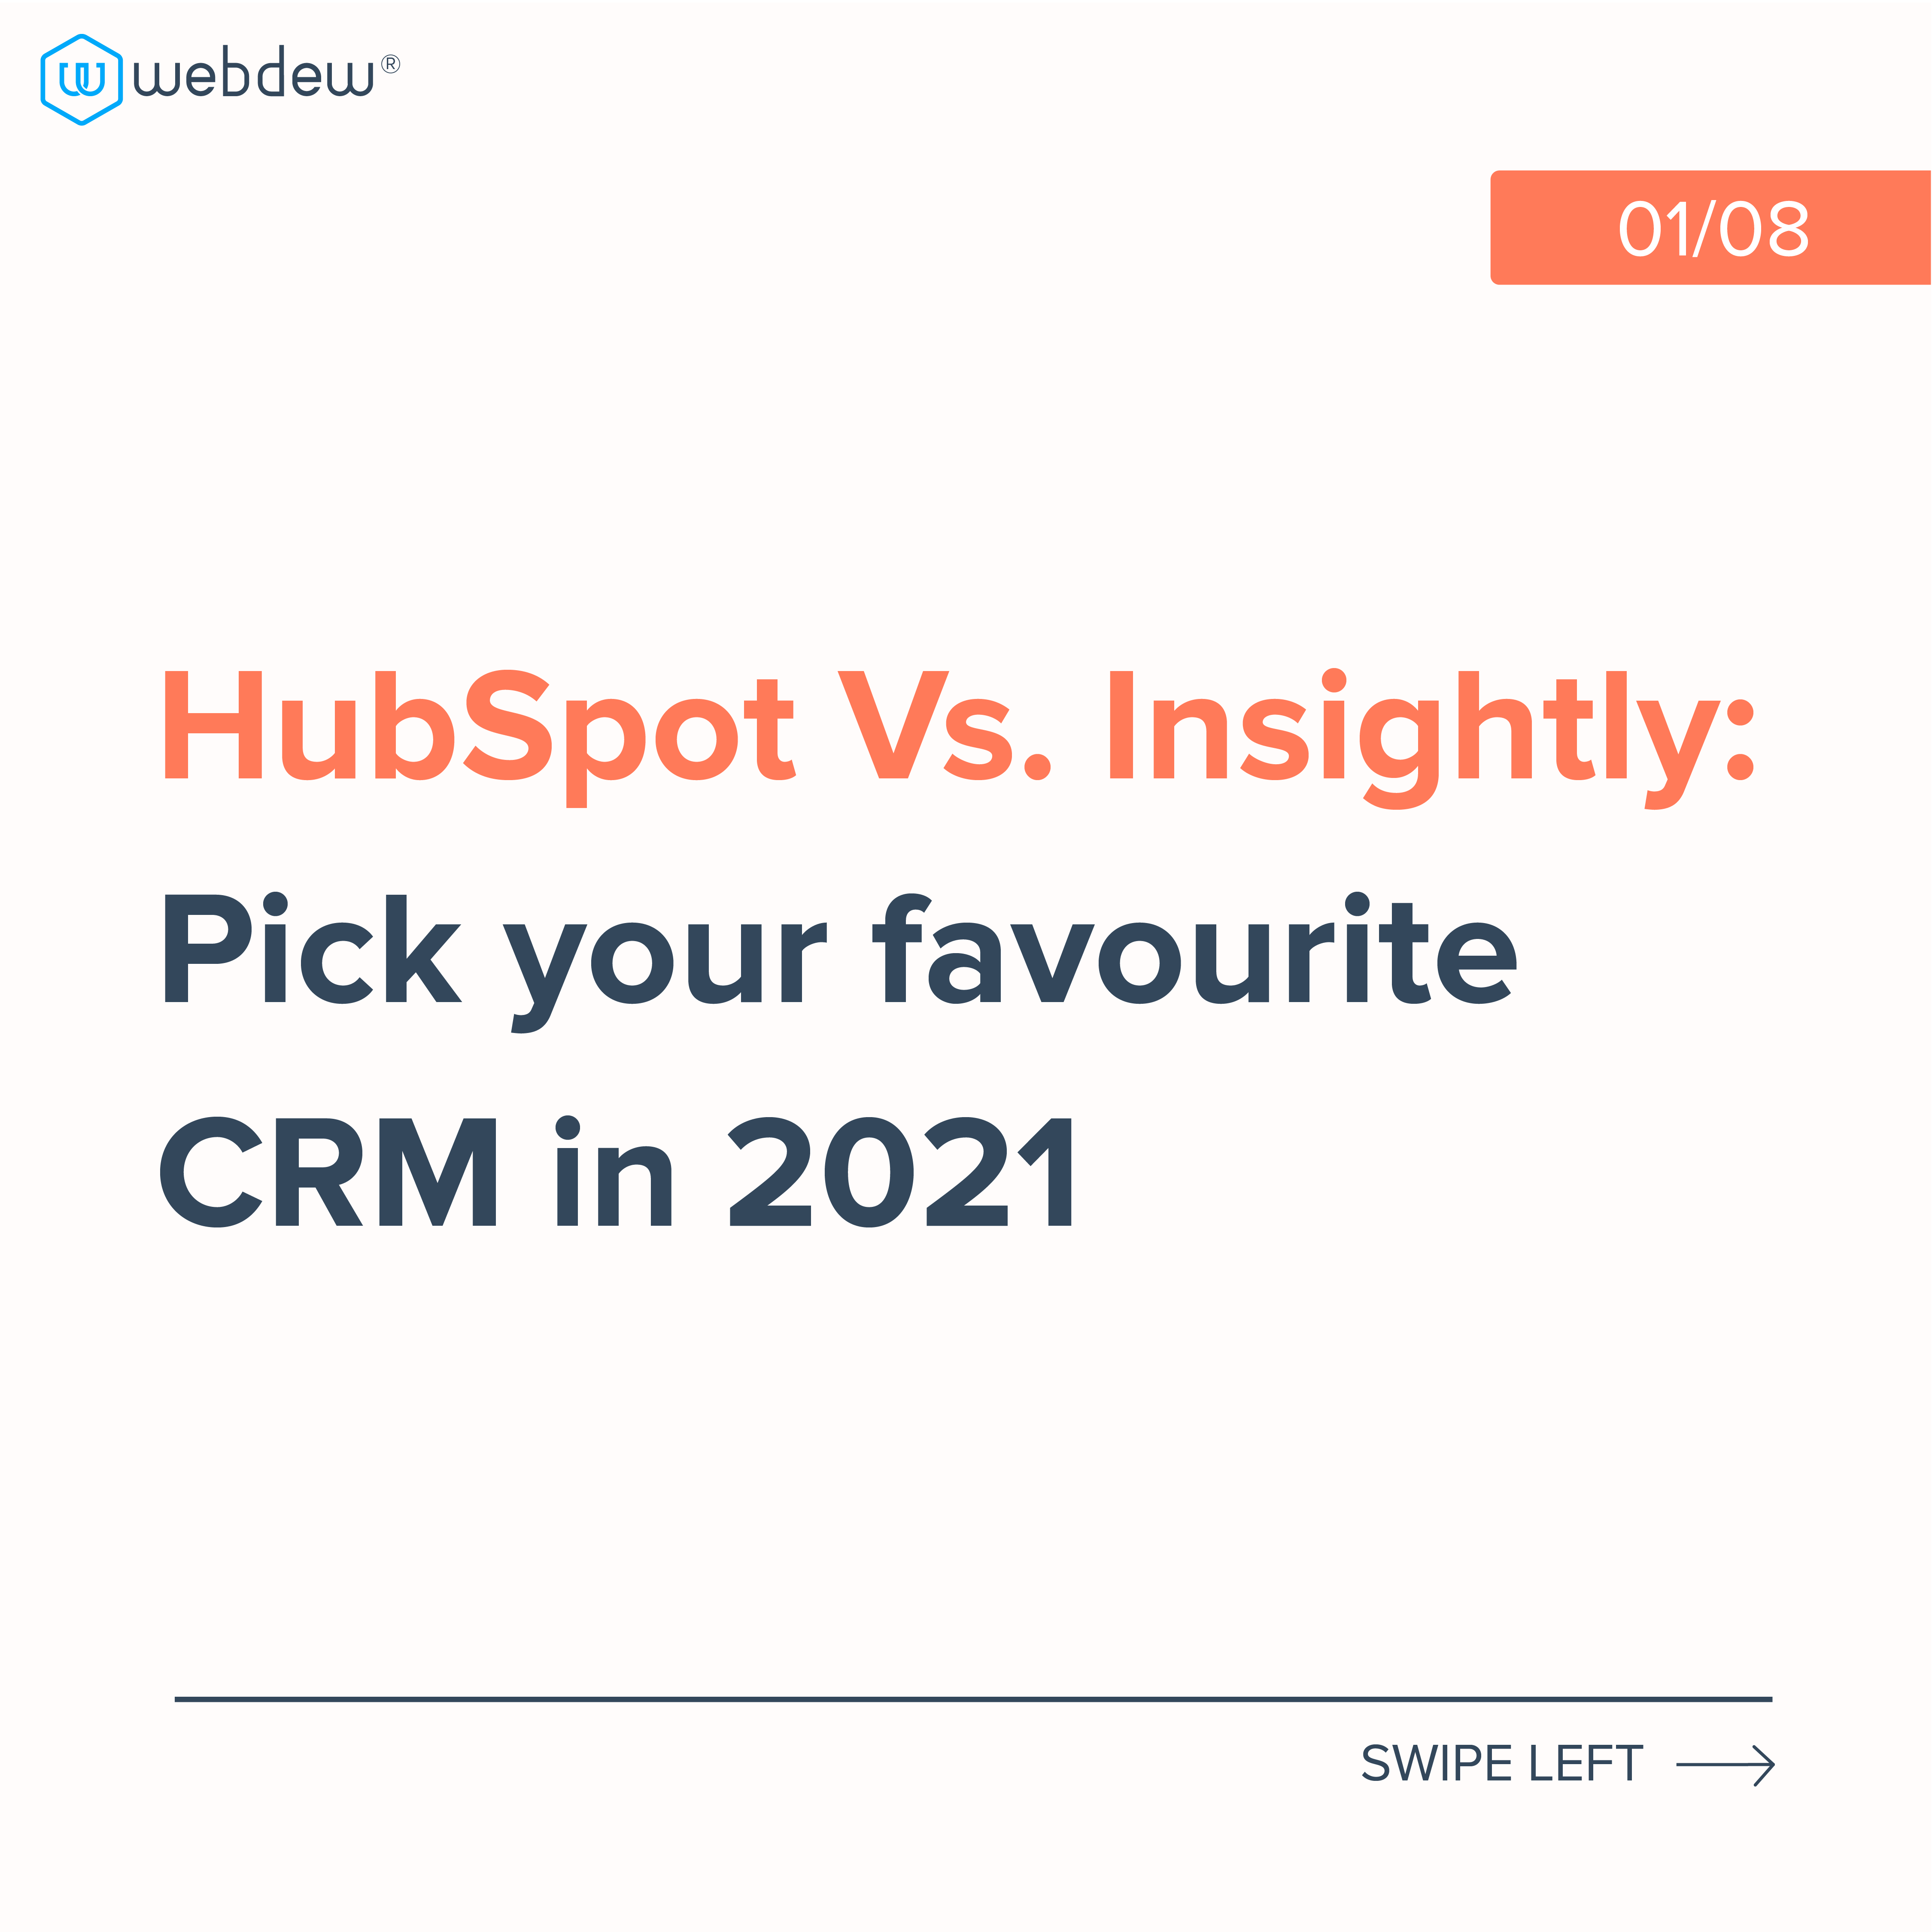 hubspot vs Insightly pick your favourite CRM in 2021-01